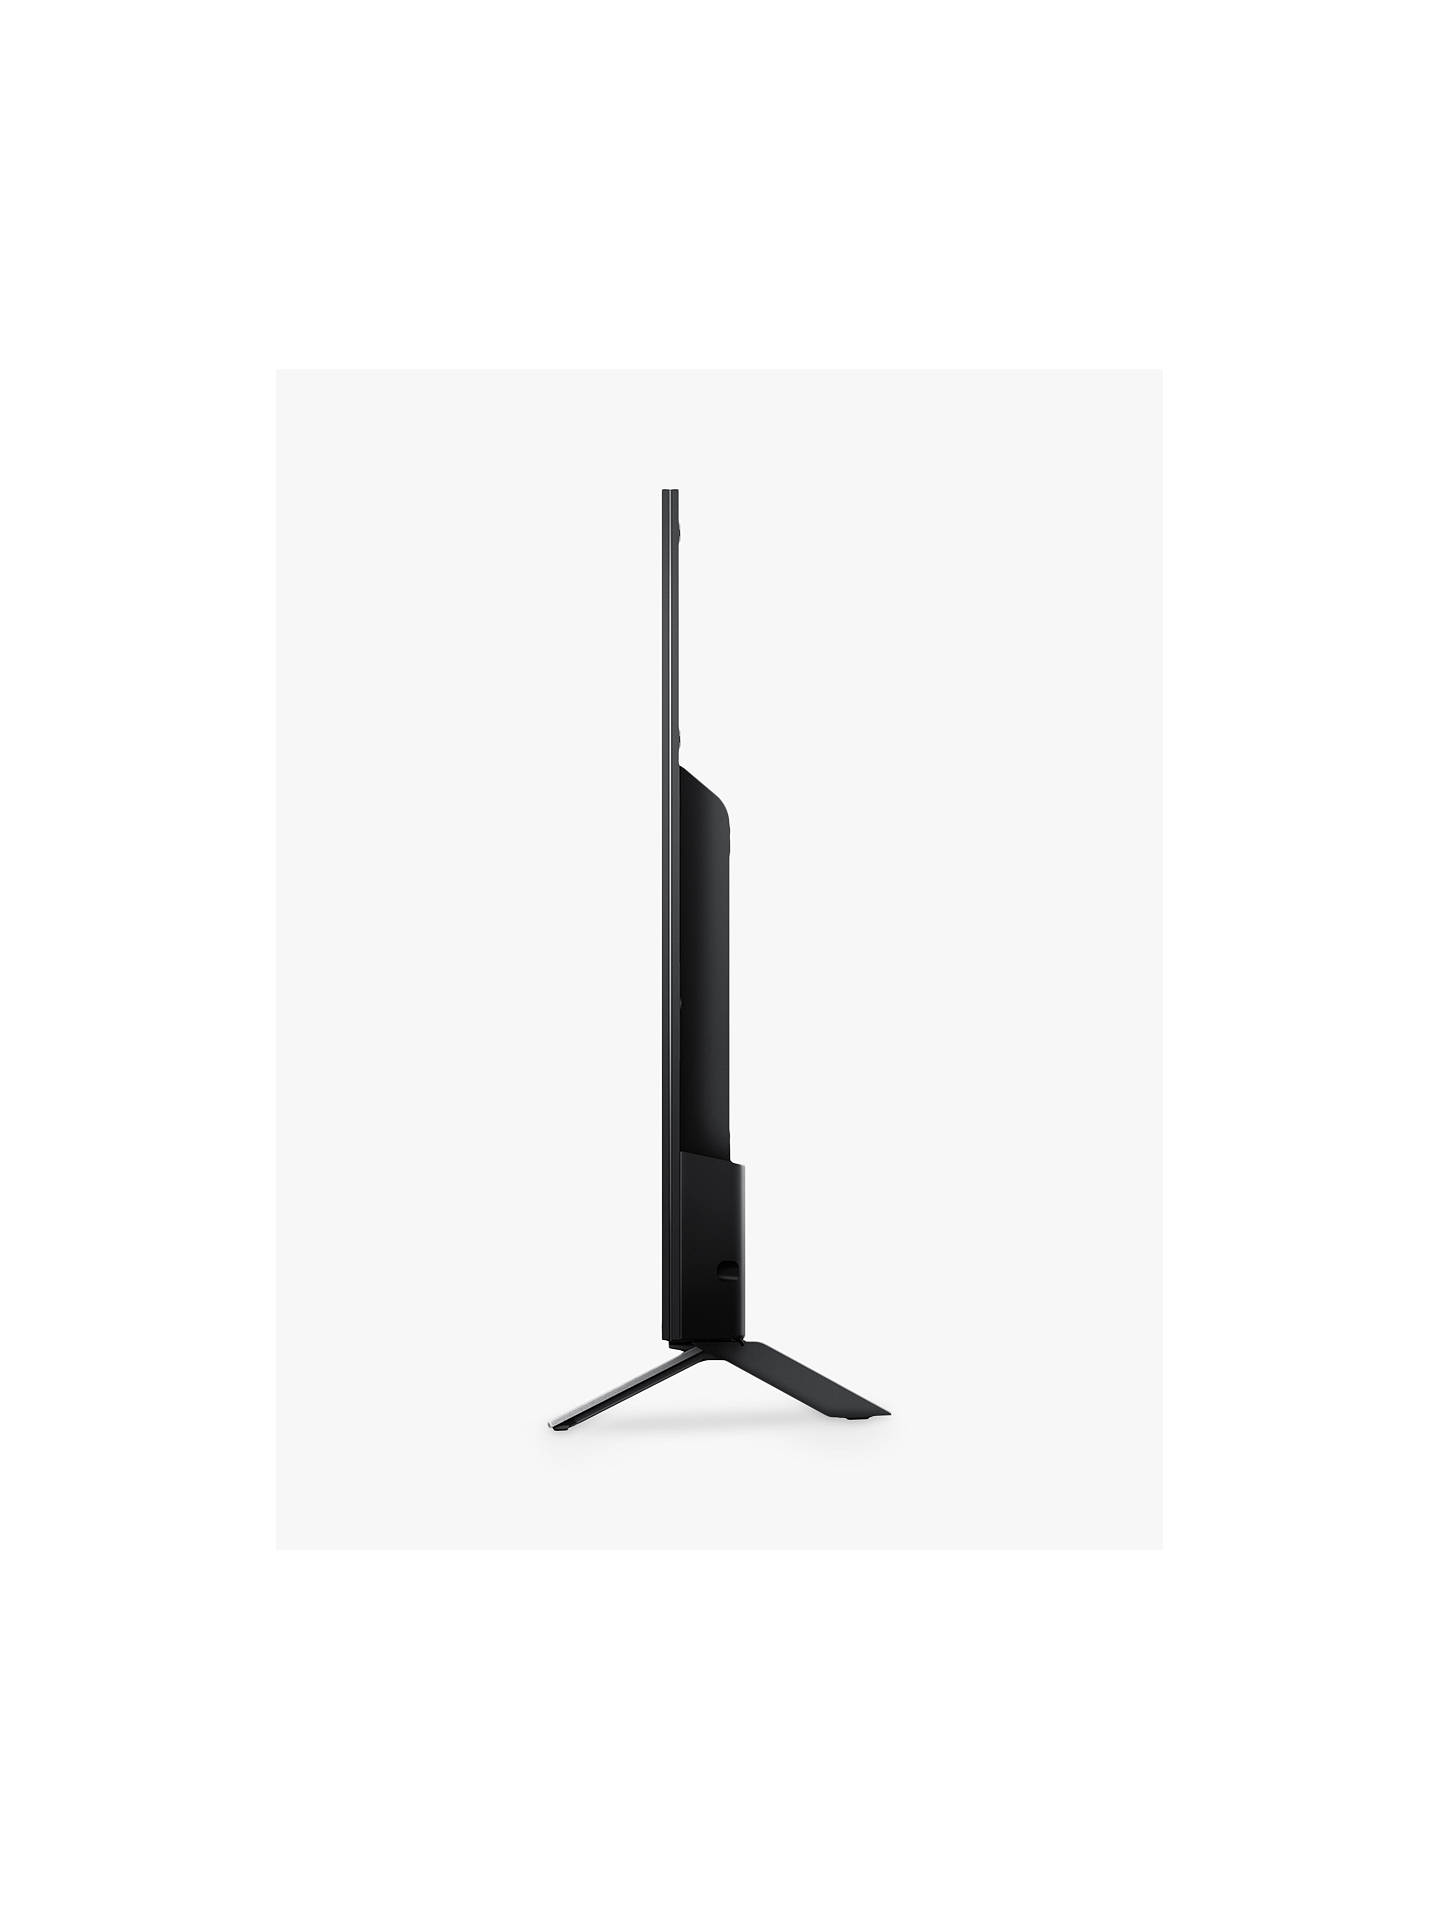 "BuySony Bravia 32WD756BU LED HD 1080p Smart TV, 32"" with Freeview HD & Cable Management System Online at johnlewis.com"